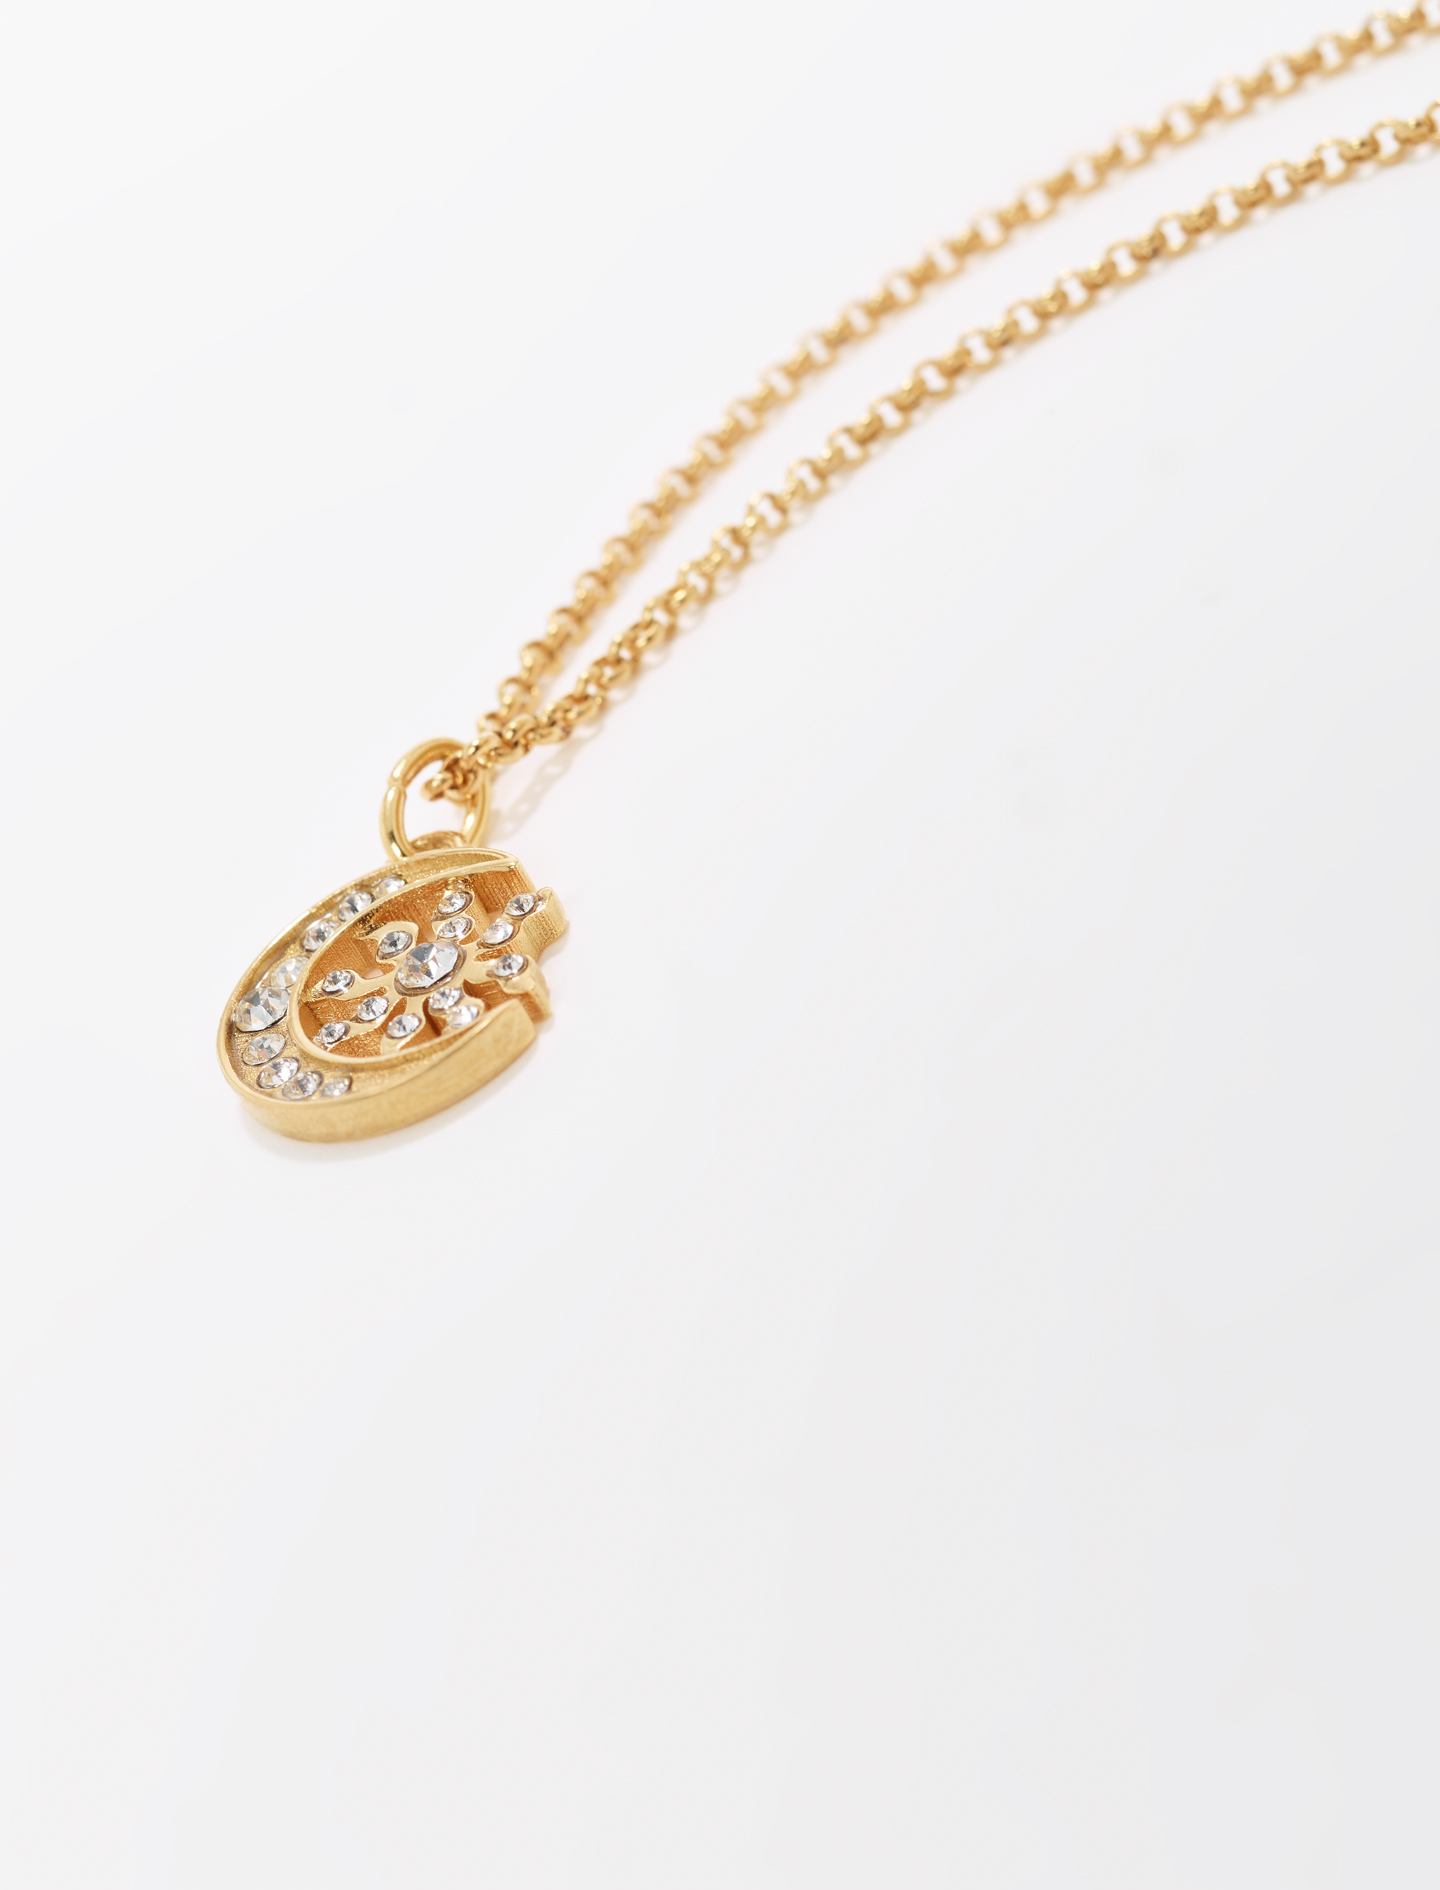 Moon and sun pendant with chain - Gold